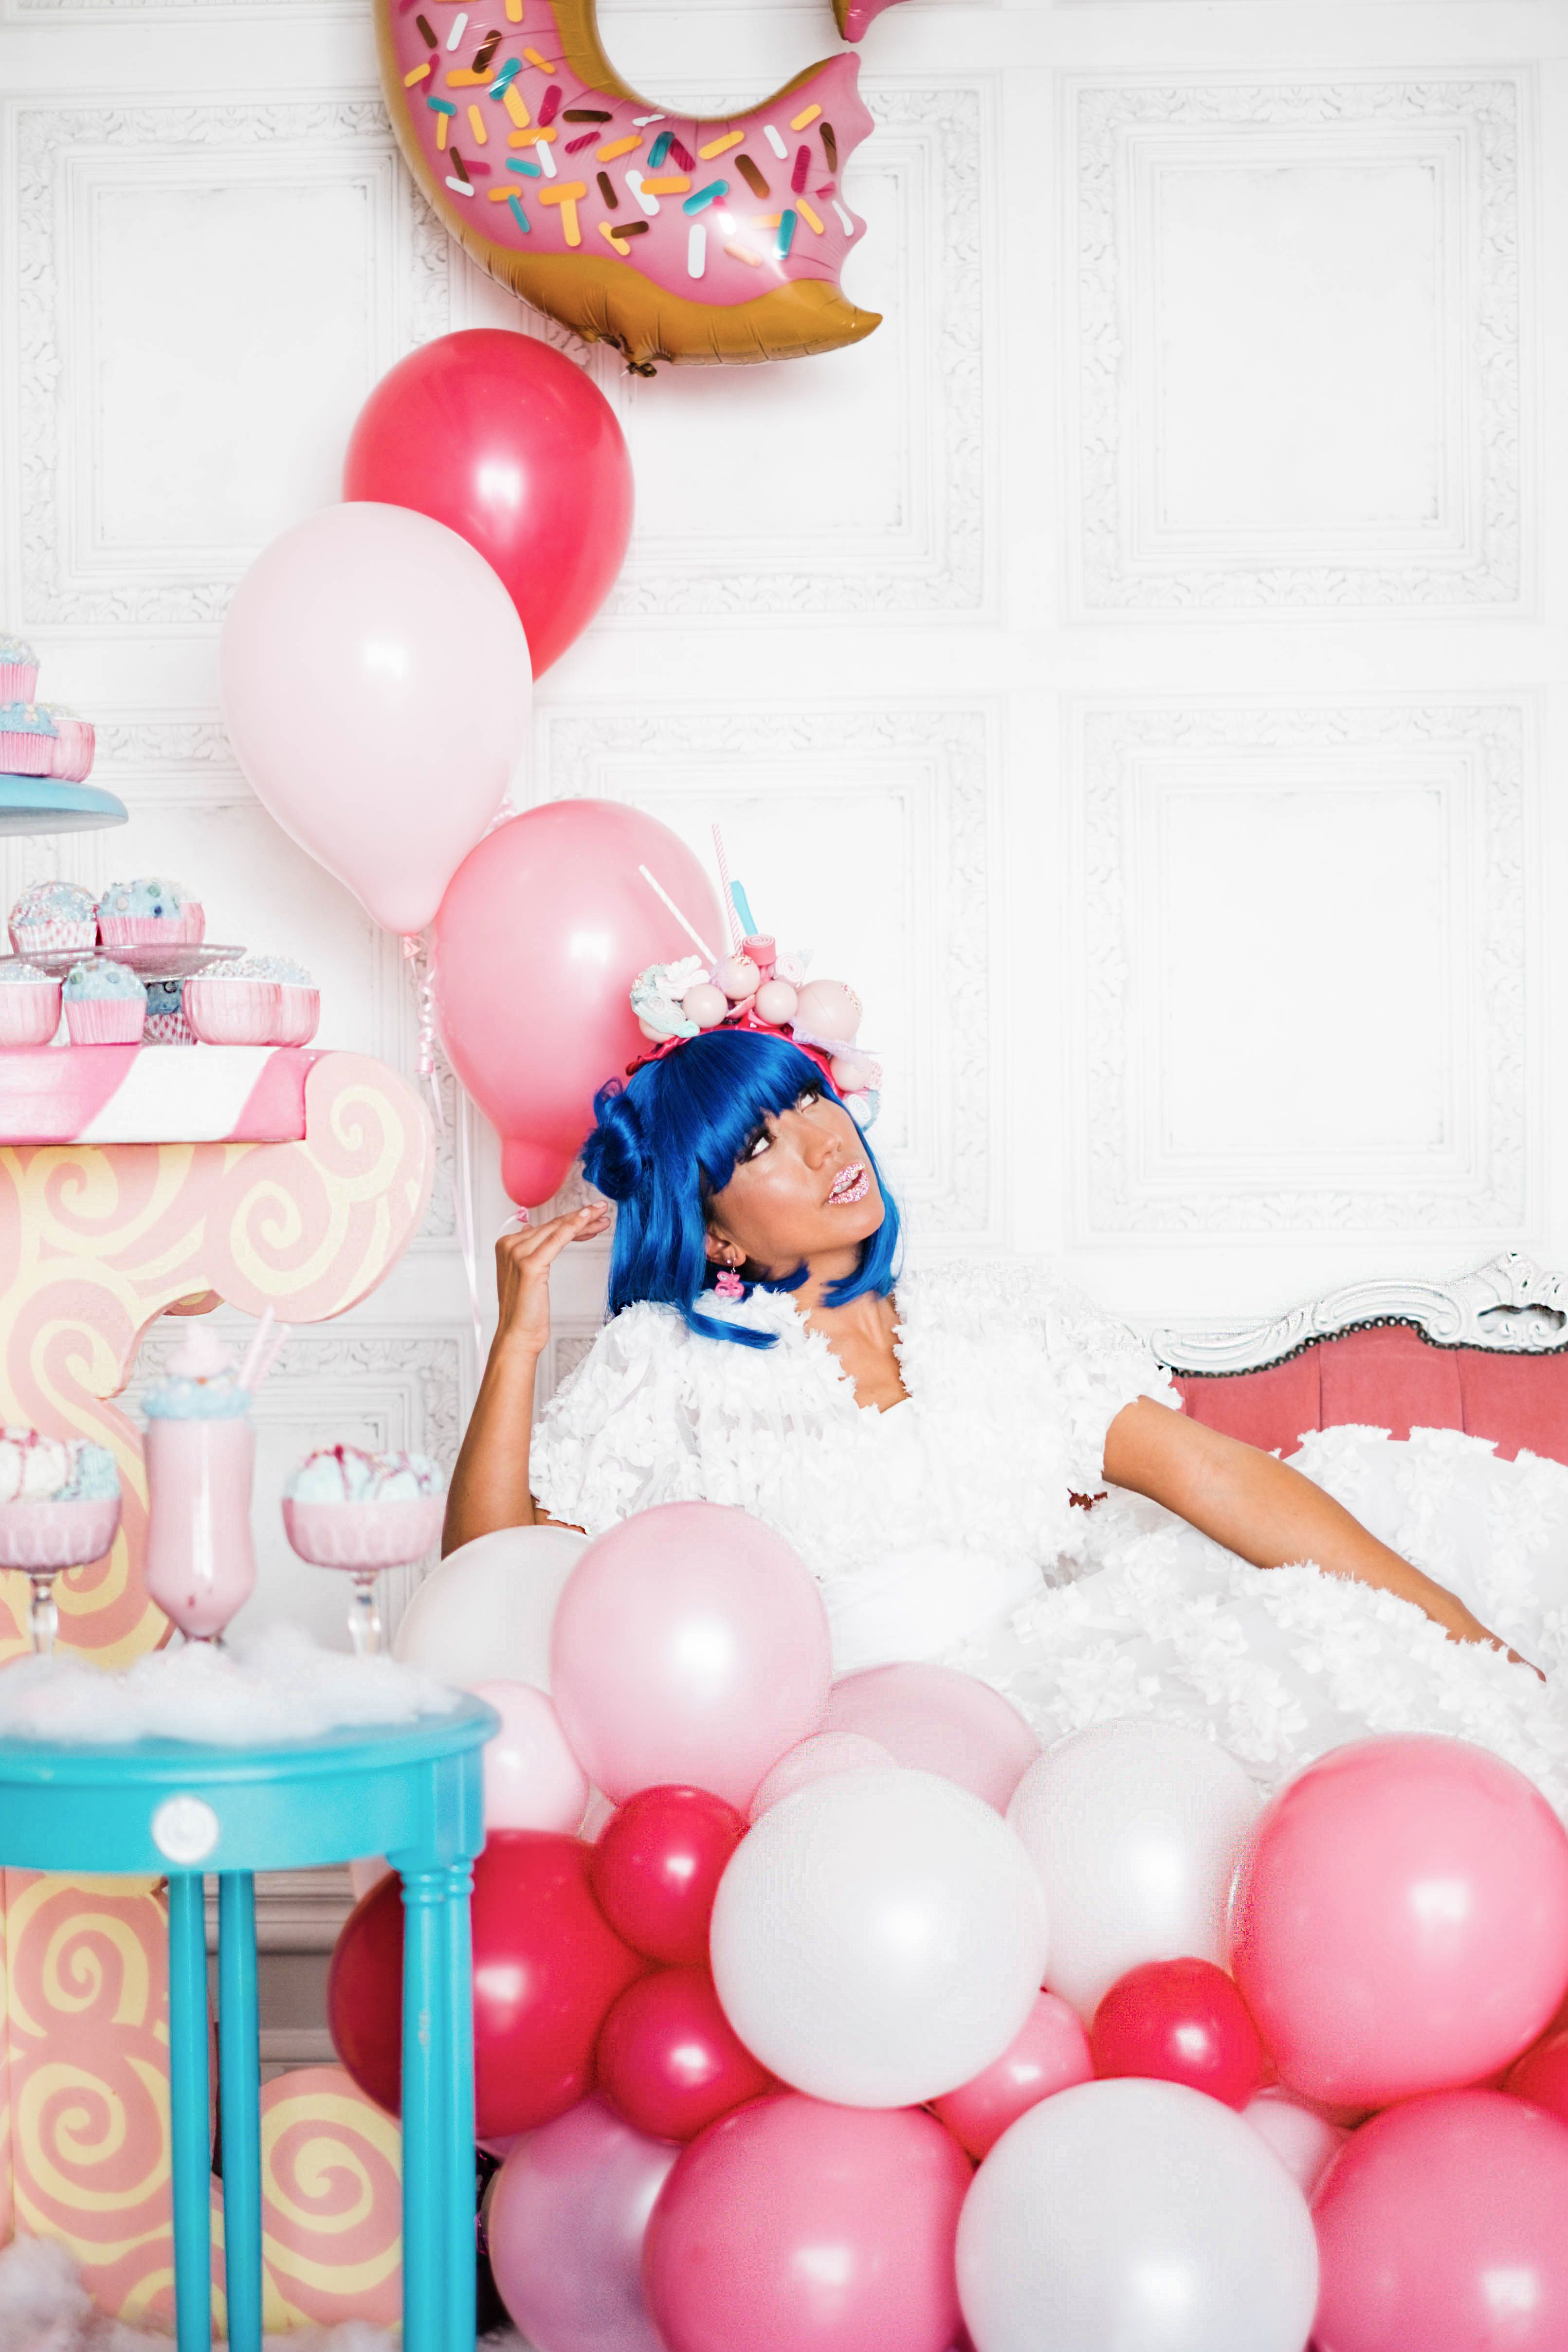 Turquoise and pink wedding candy inspiration. Blue hair bride in a ...